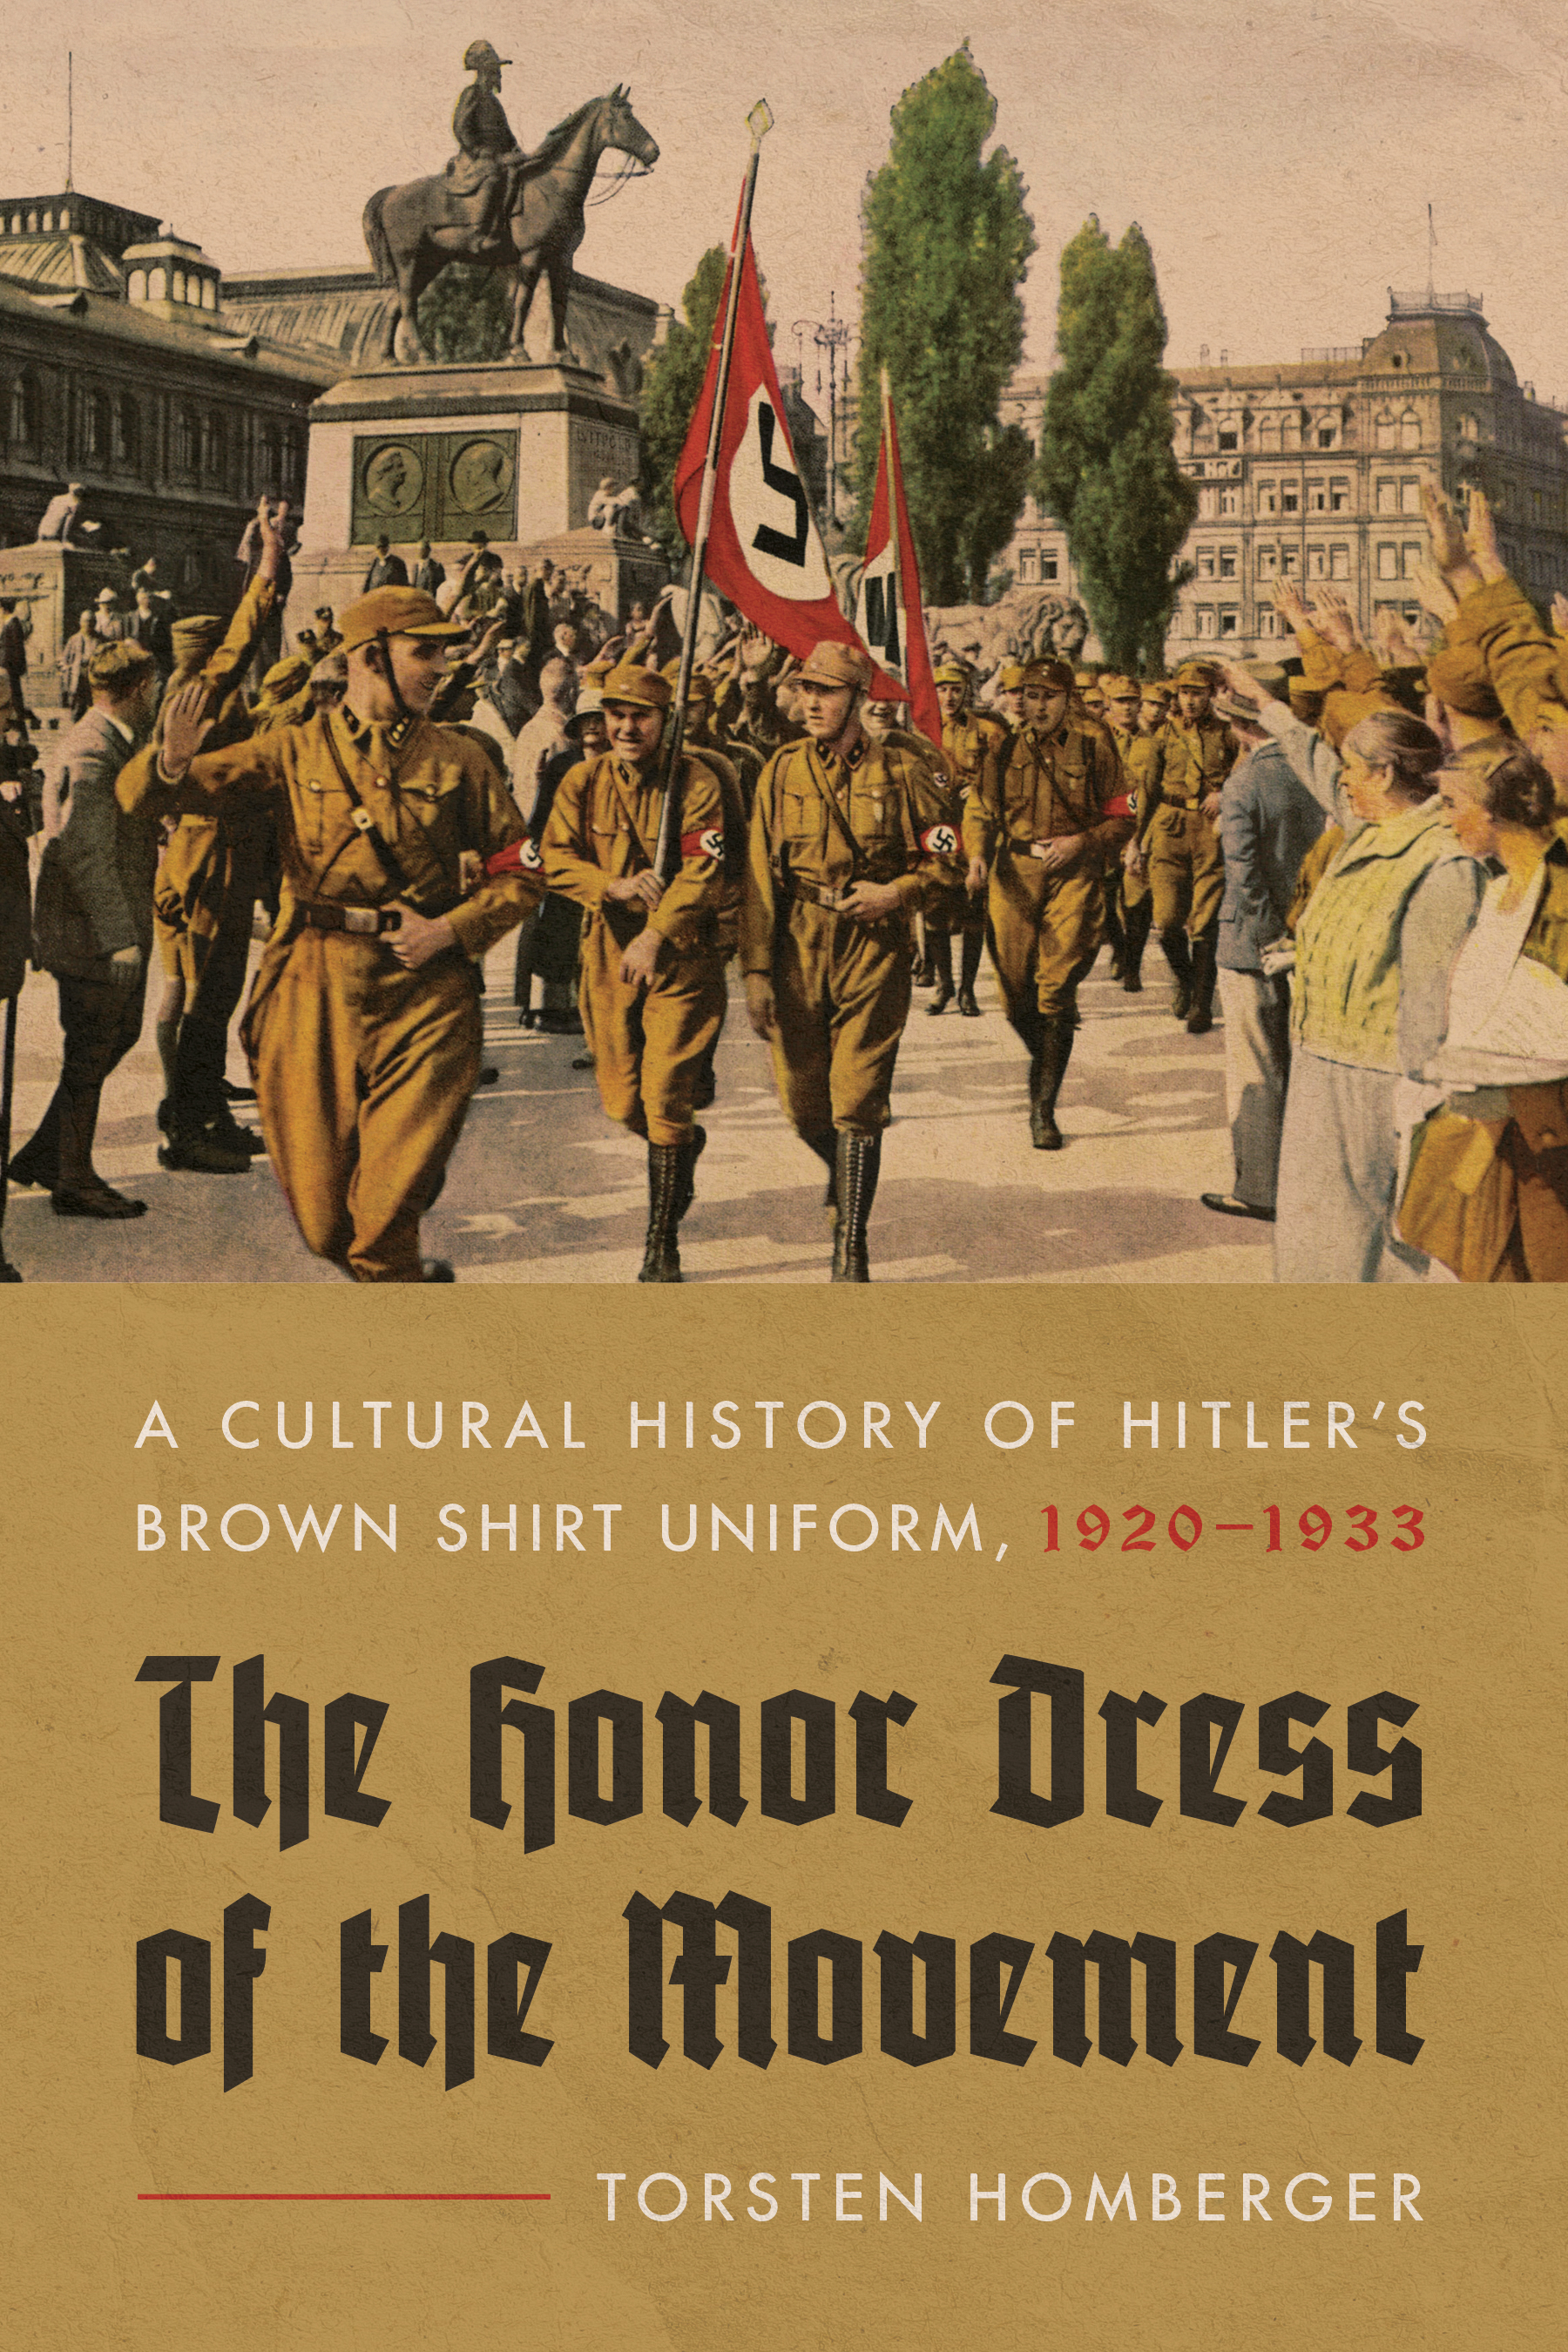 Honor Dress of the Movement